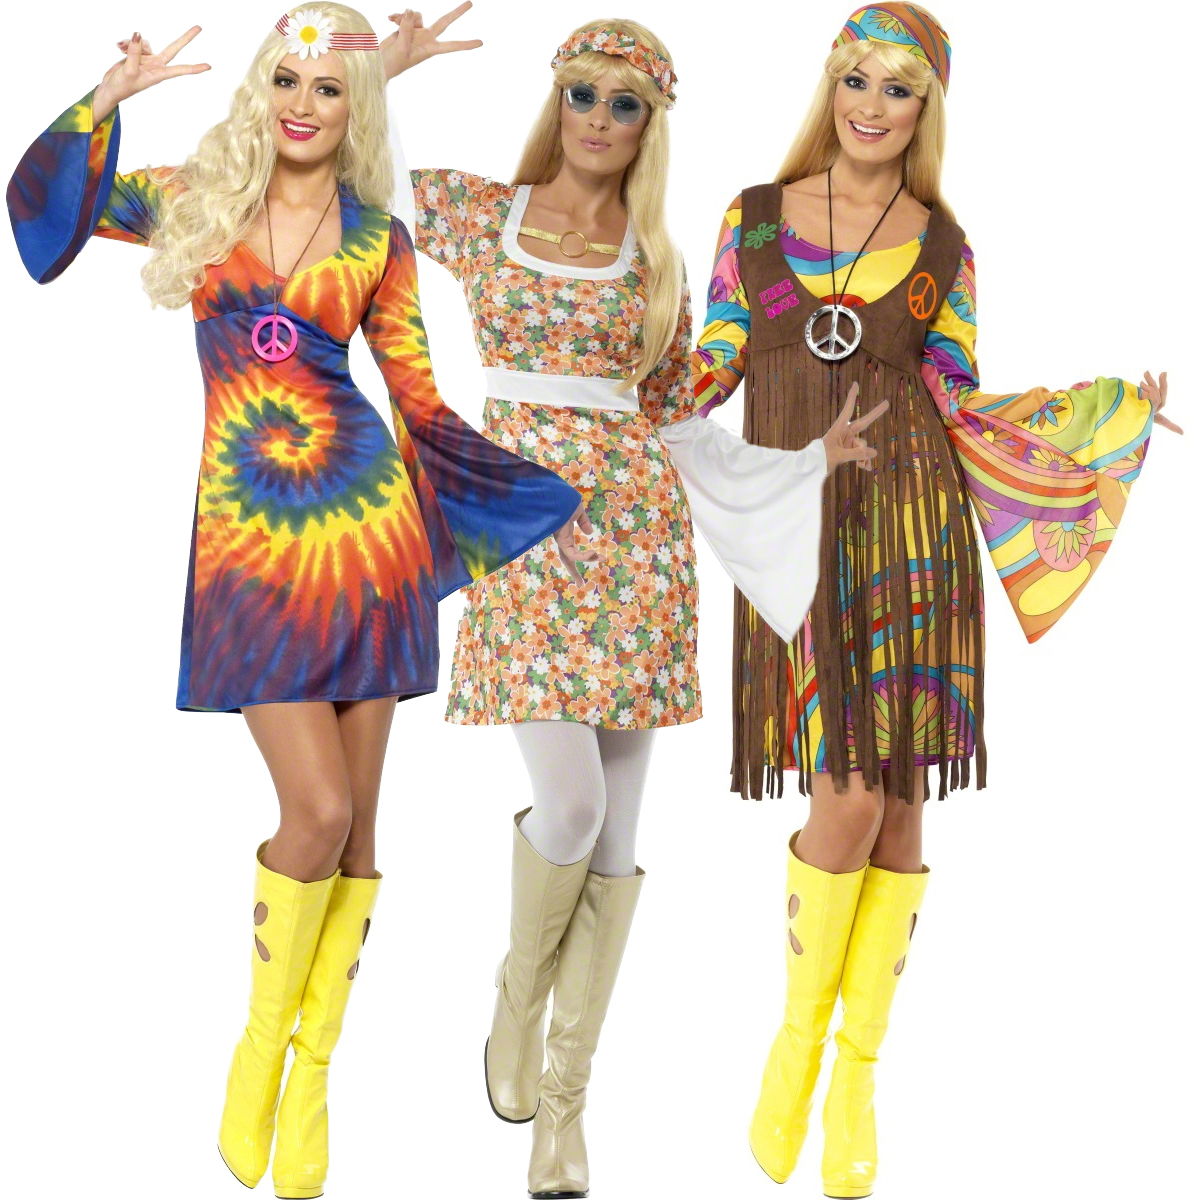 70s fancy dress ideas list best ideas dress 70s fancy dress ideas list hd image solutioingenieria Gallery